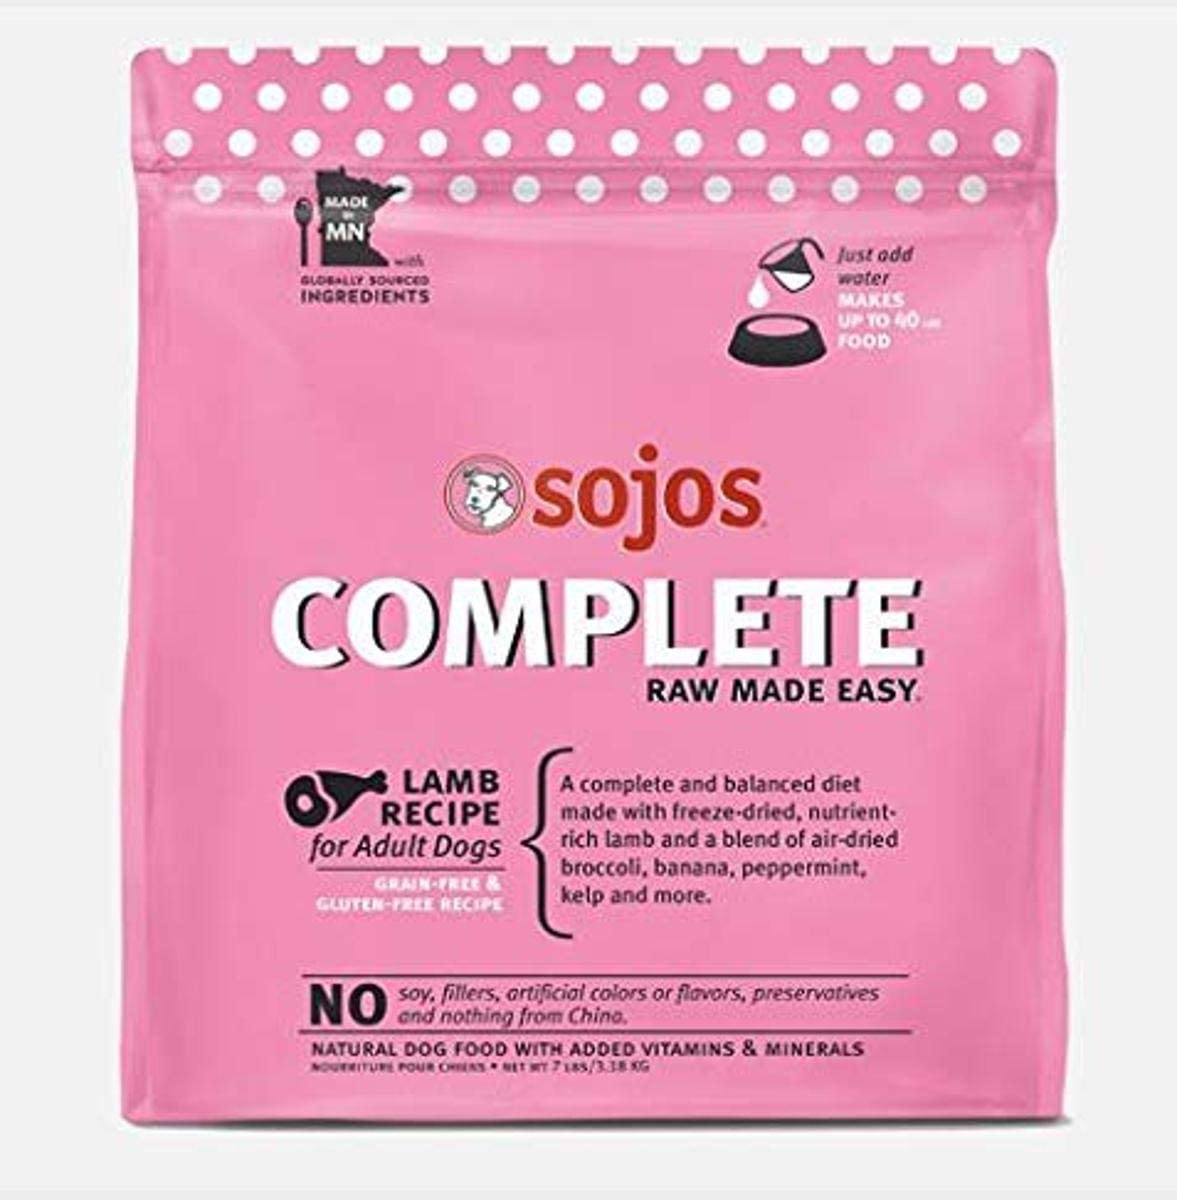 Sojos Complete Raw Made Easy Freeze-Dried, 7-Pound Bag Dog Food Lamb Recipe (1)